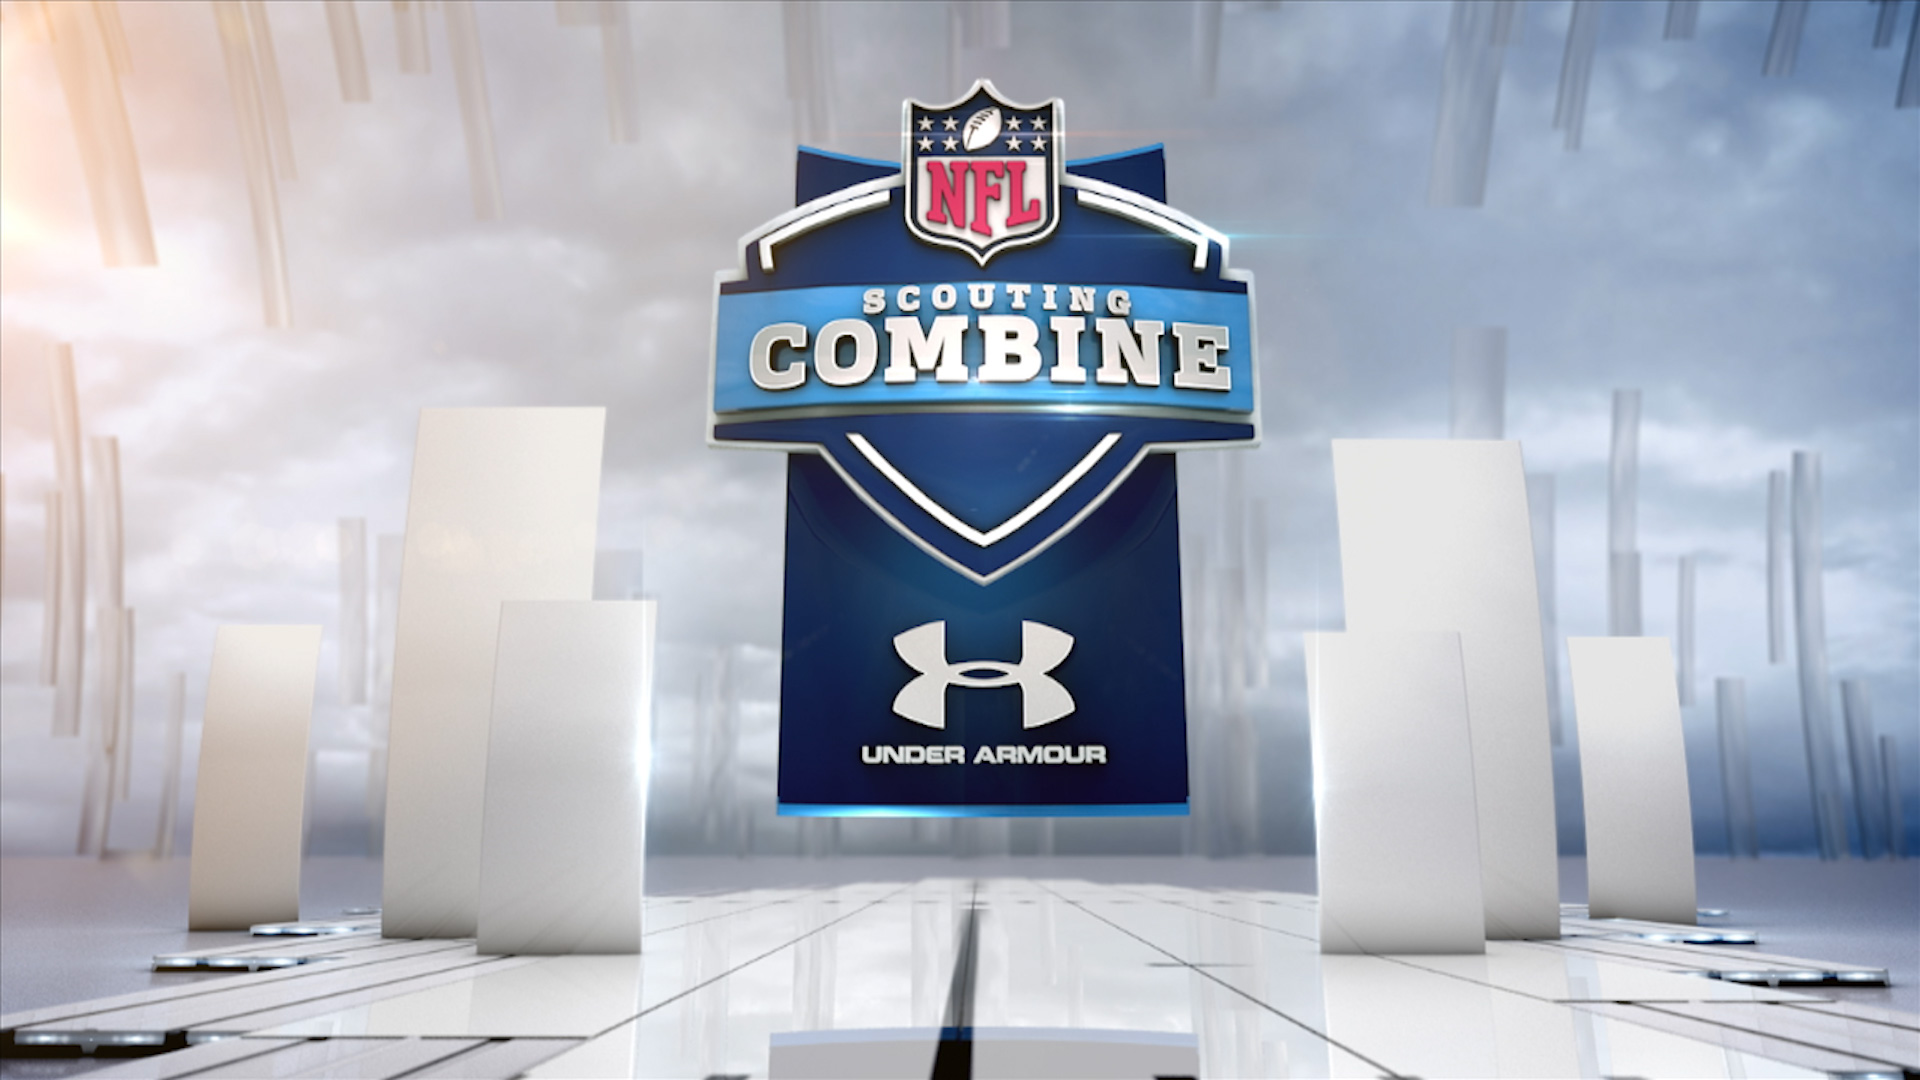 NFL Combine Show Package